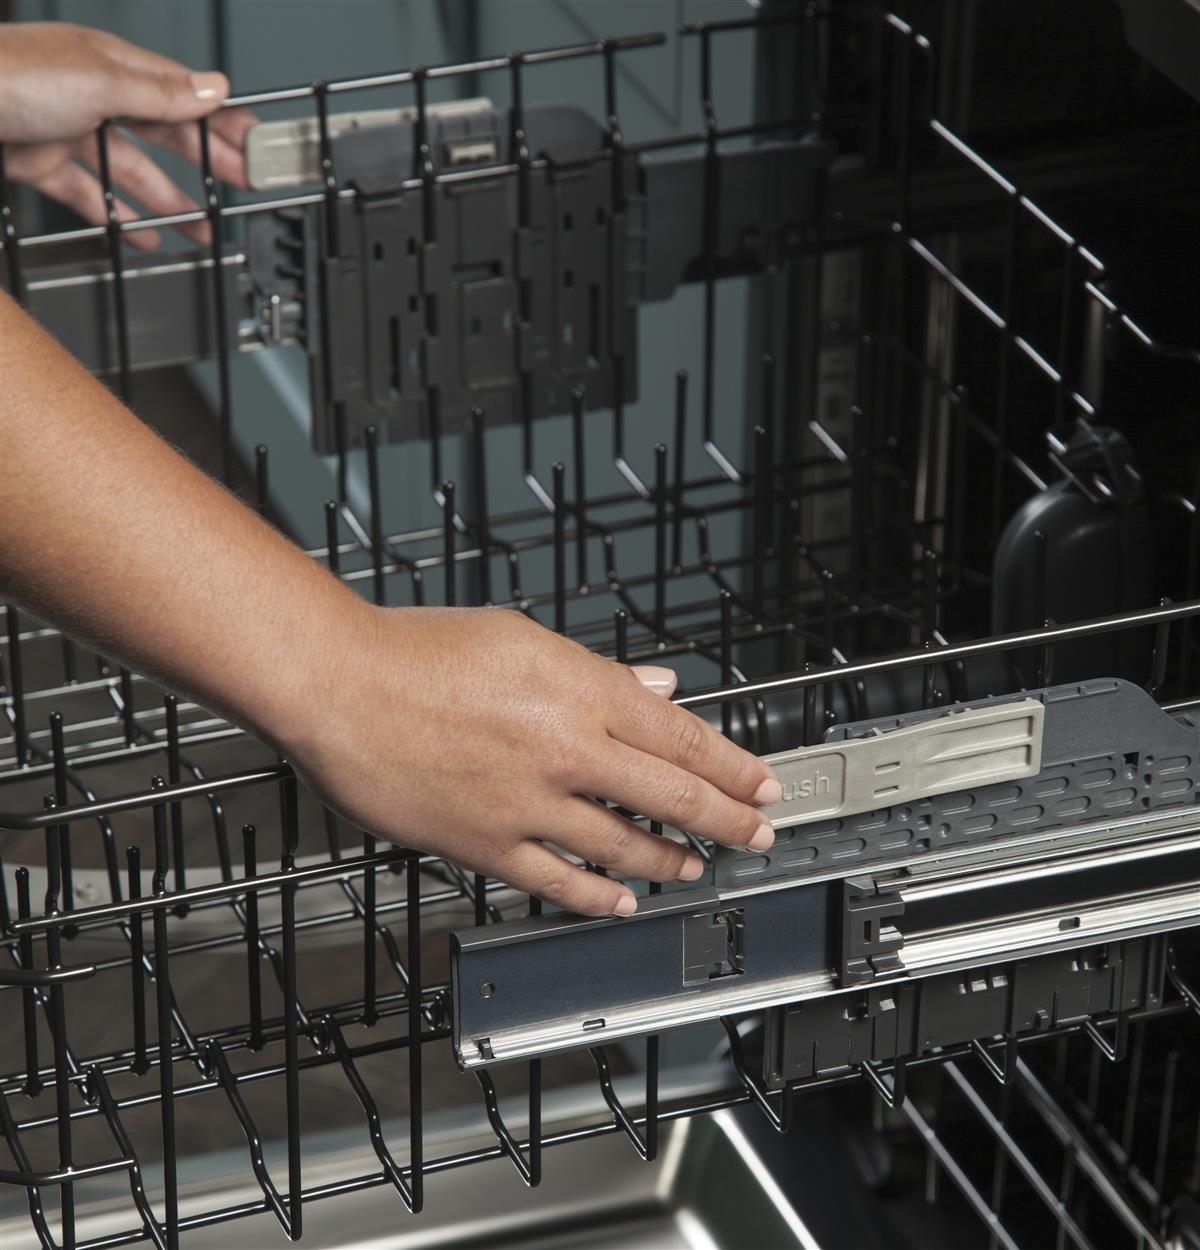 Easy touch adjustable upper rack with 2 Stem Safe shelves